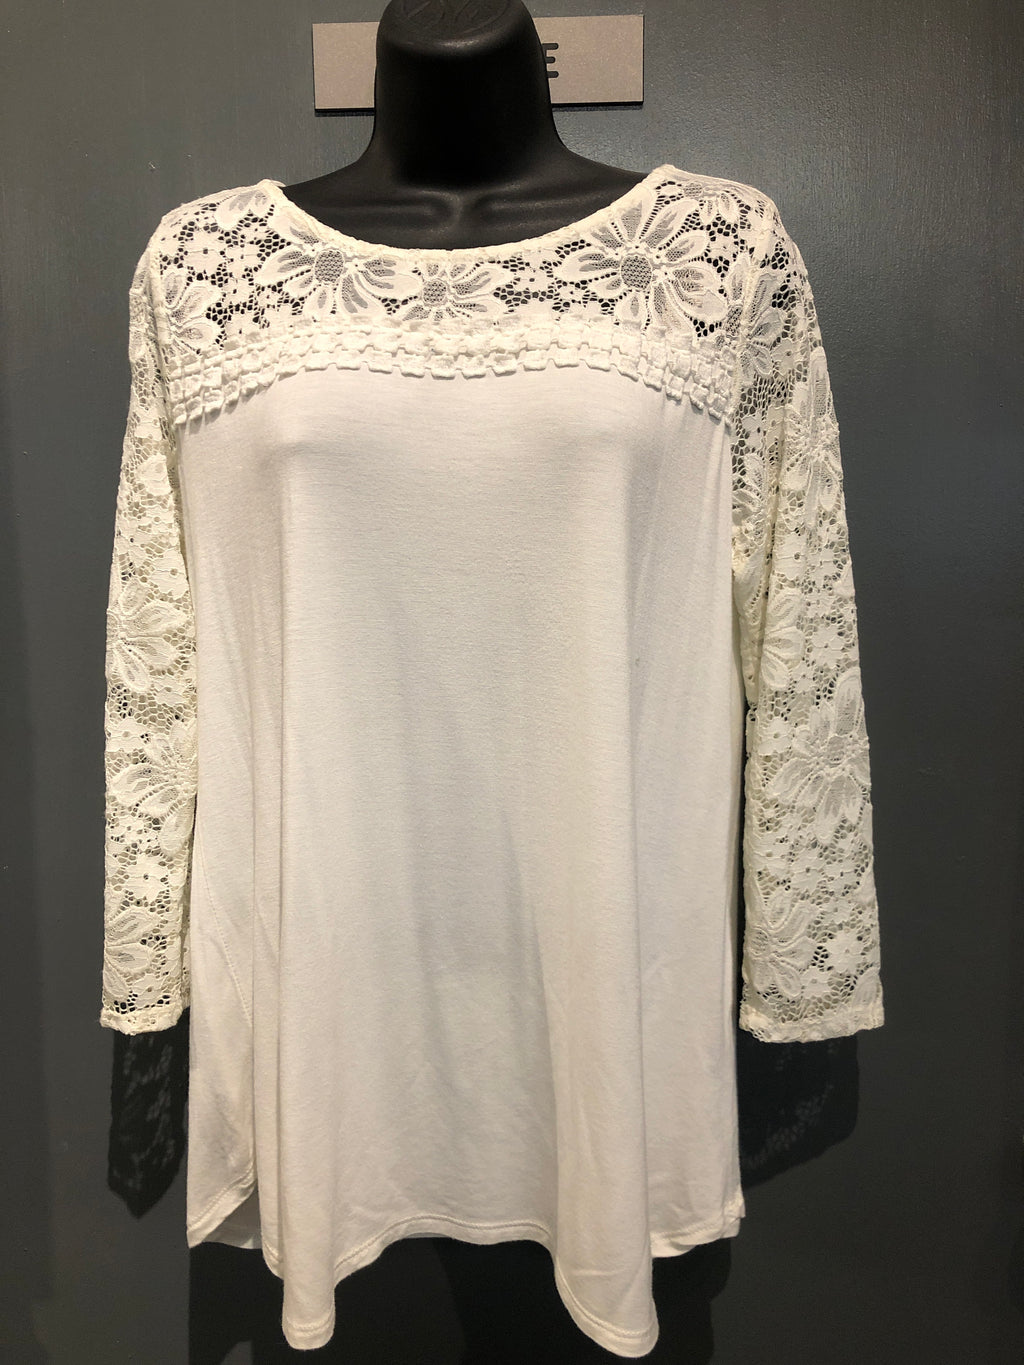 White long sleeve lace neck/sleeve top size medium